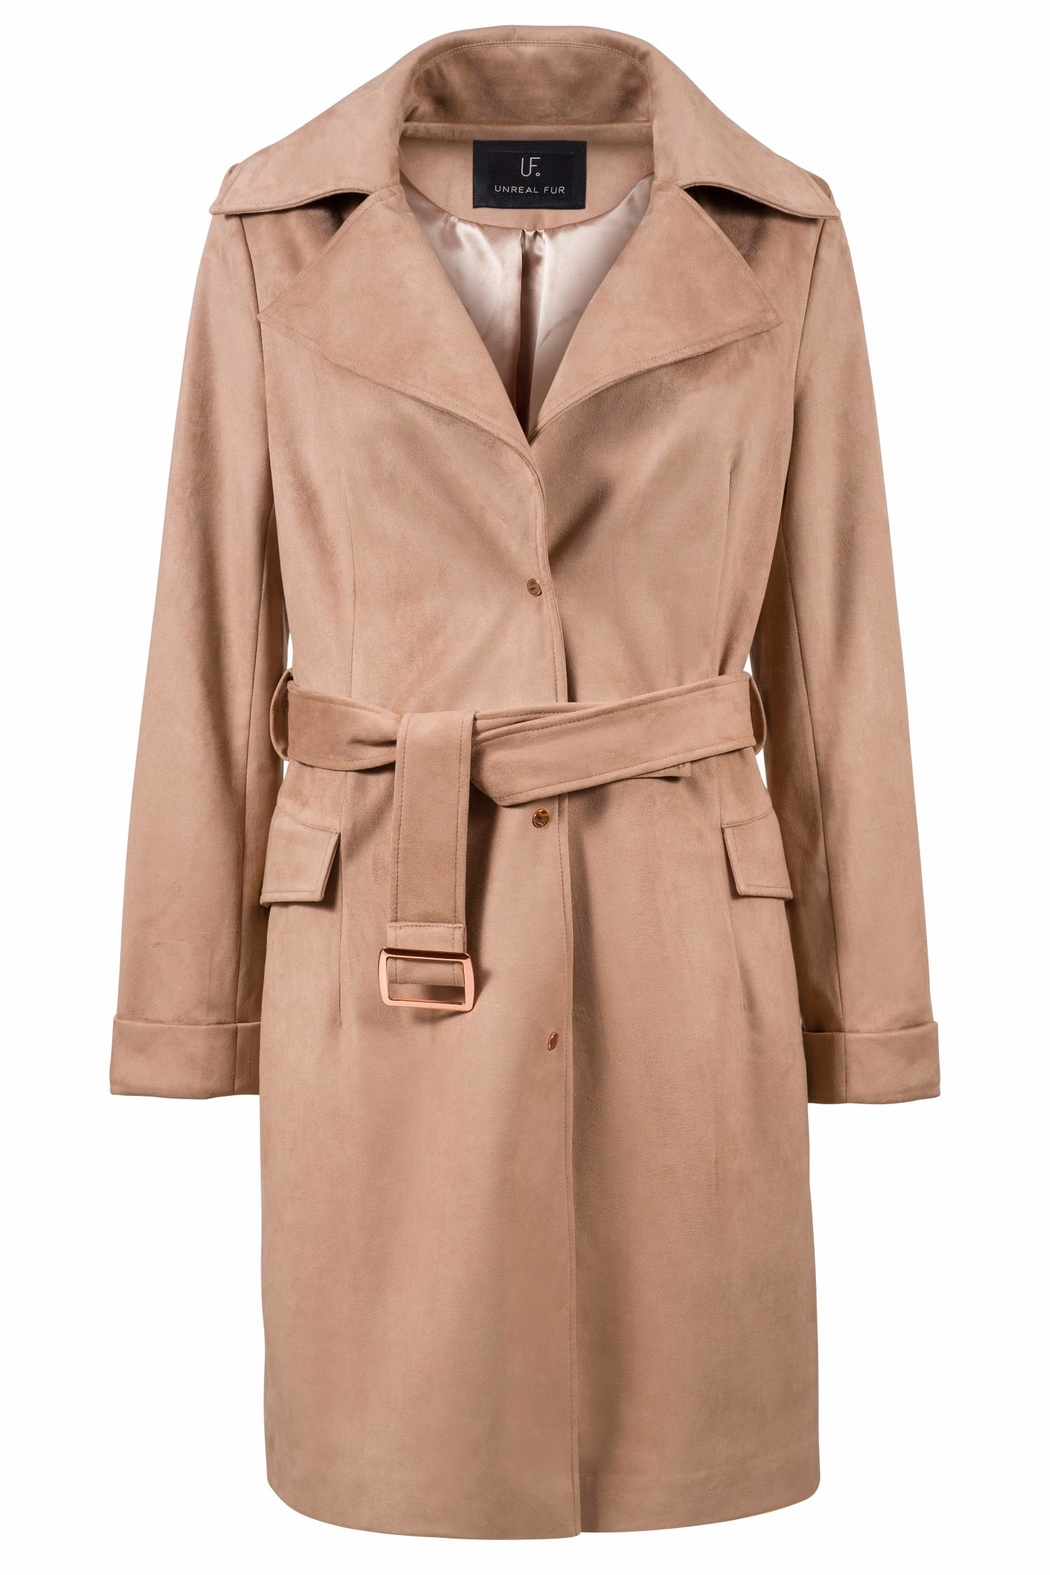 UNREAL FUR Magic Trench Coat - Front Cropped Image